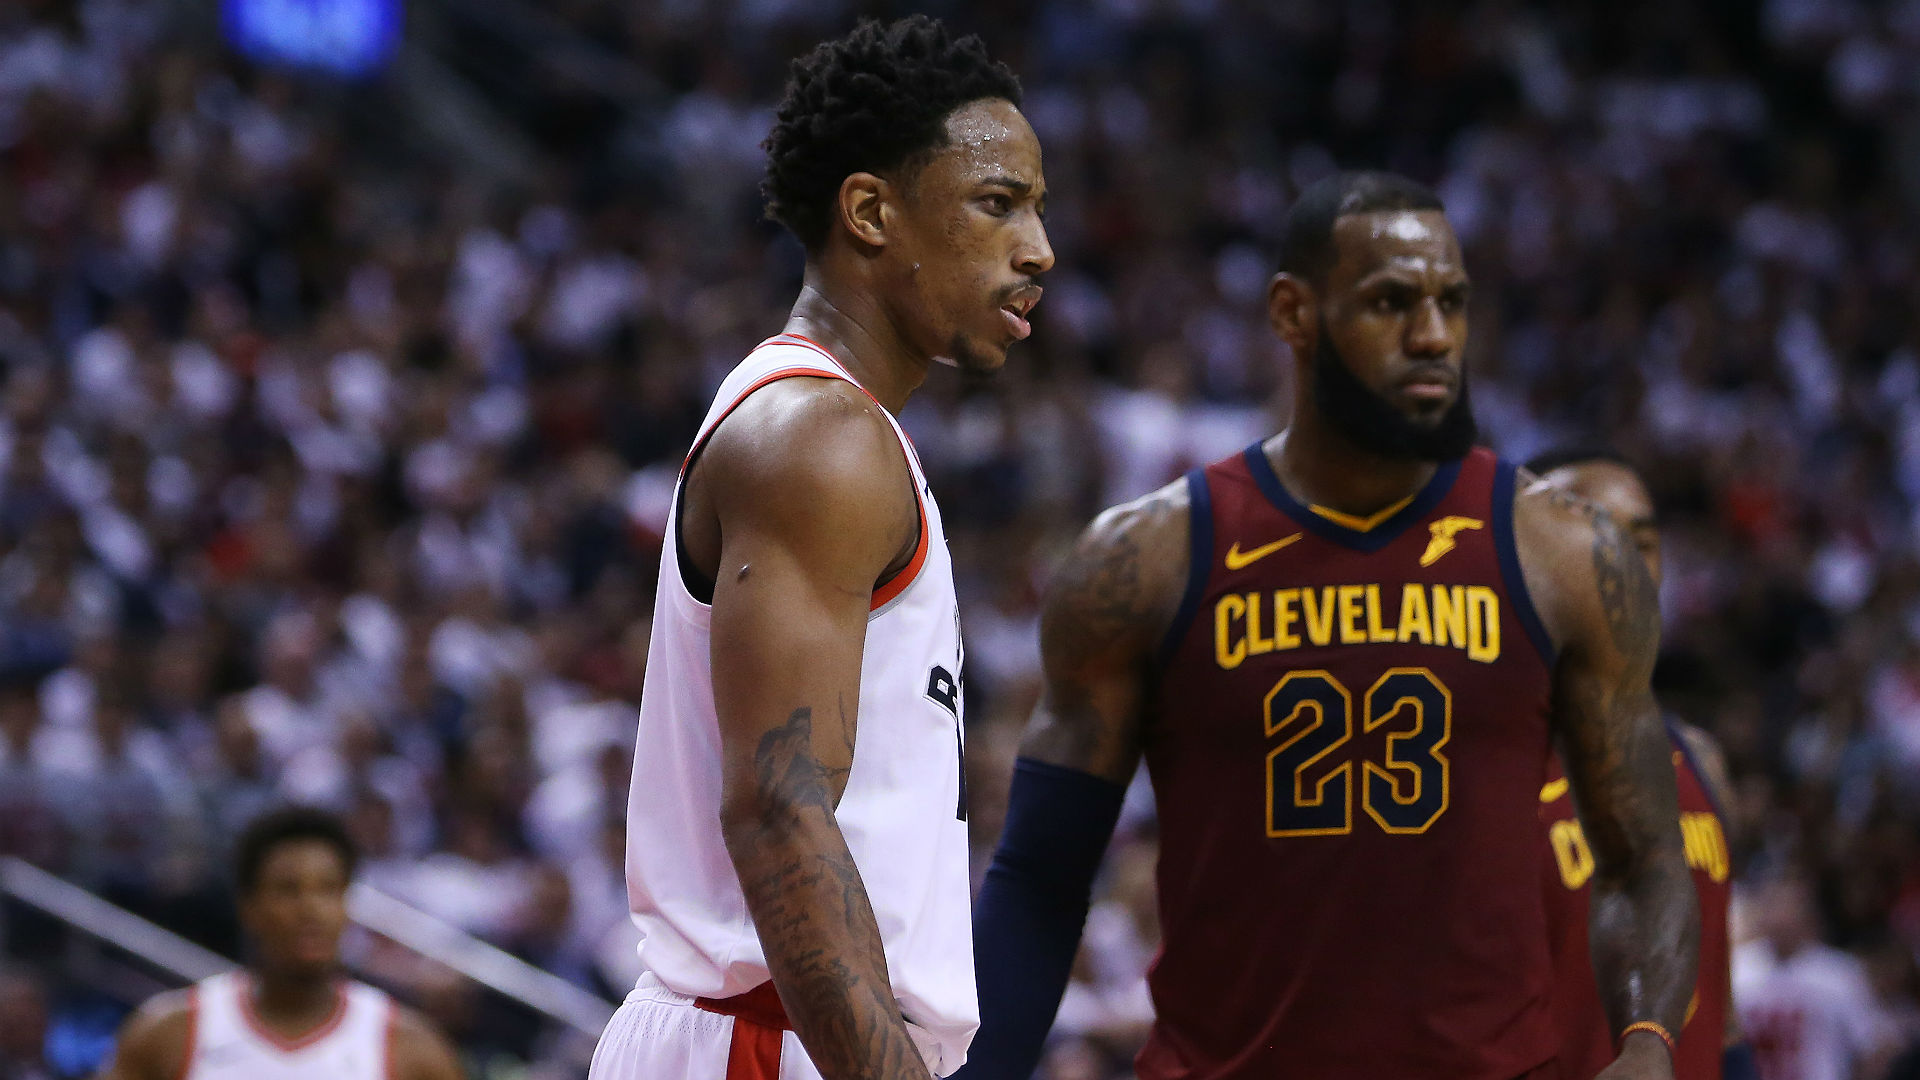 Raptors vs. Cavs: Score, highlights, updates from Game 2 of East semifinals